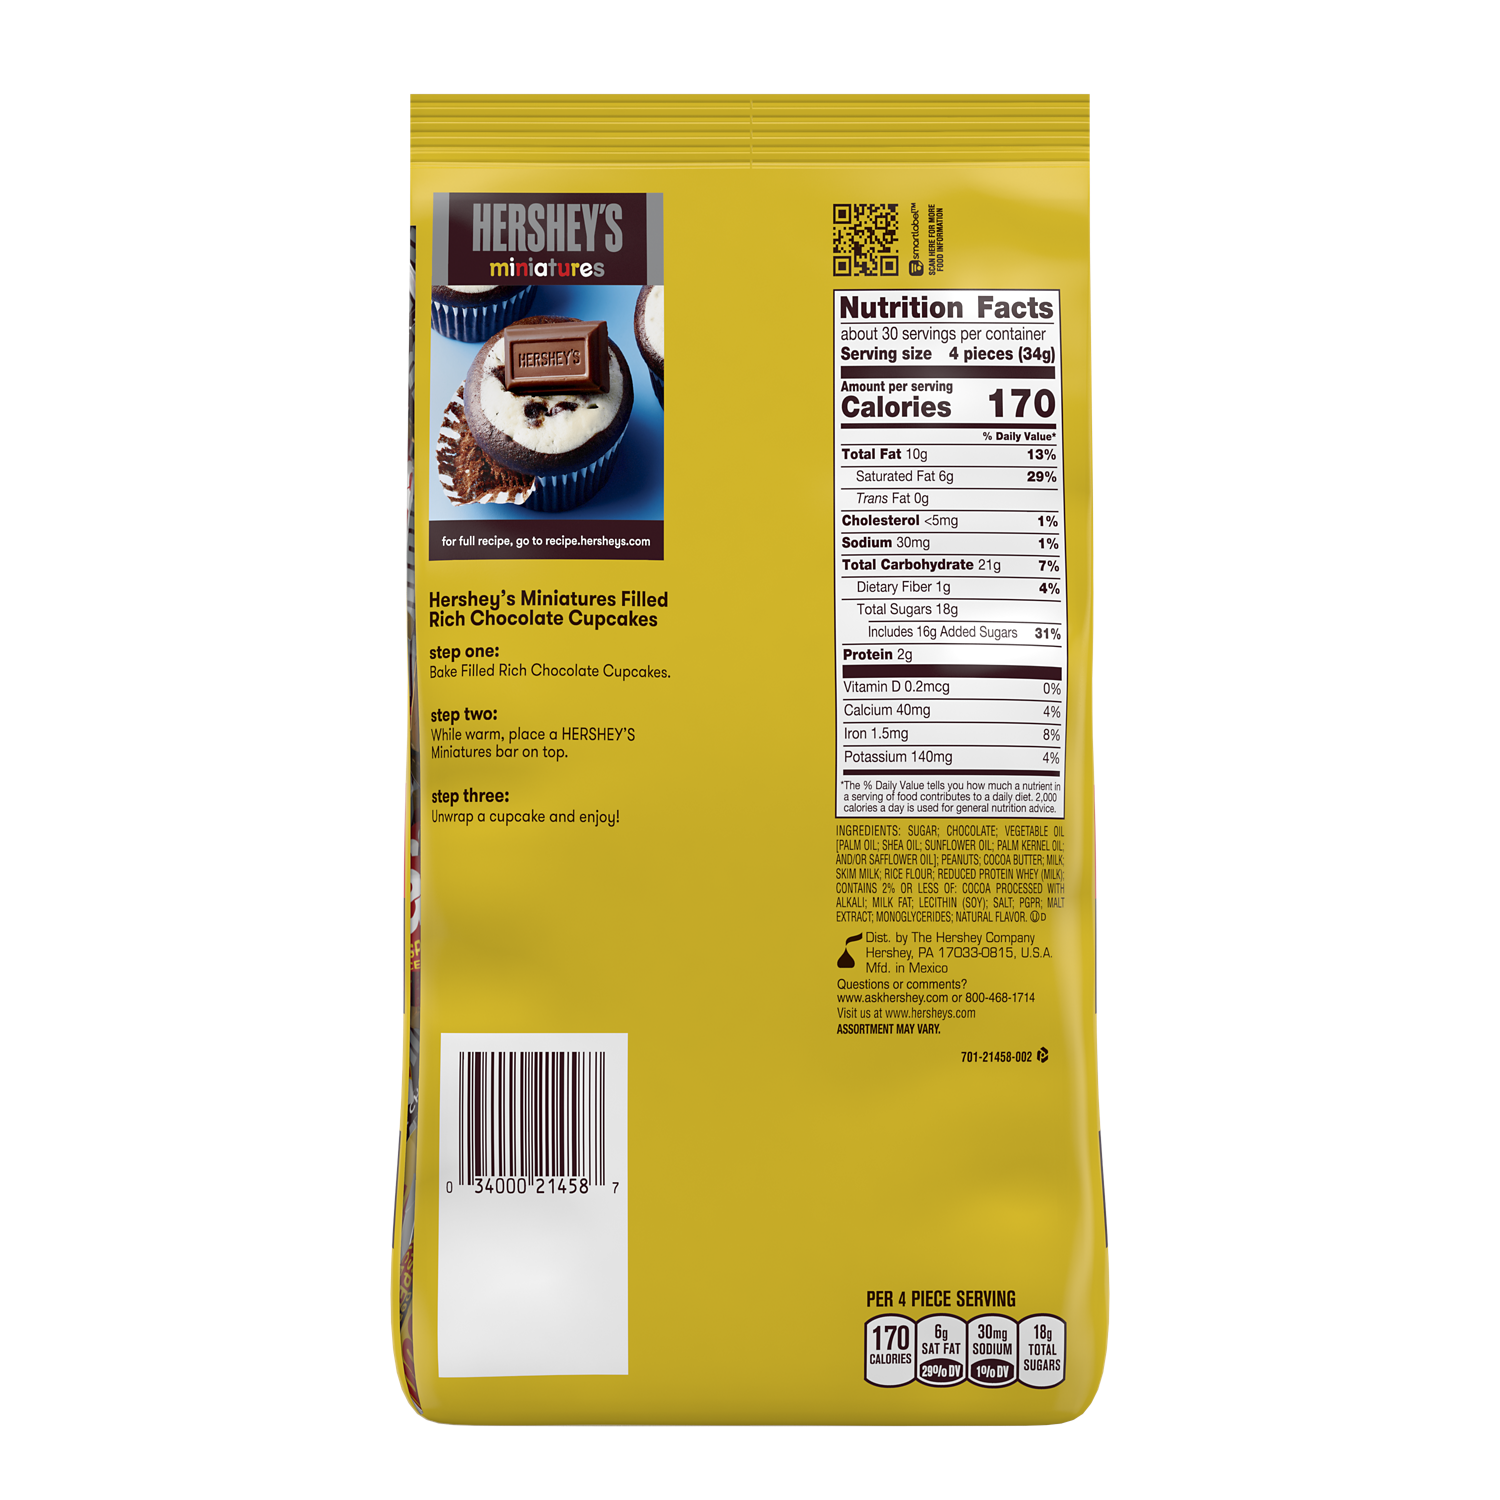 HERSHEY'S Miniatures Assortment, 35.9 oz pack - Back of Package